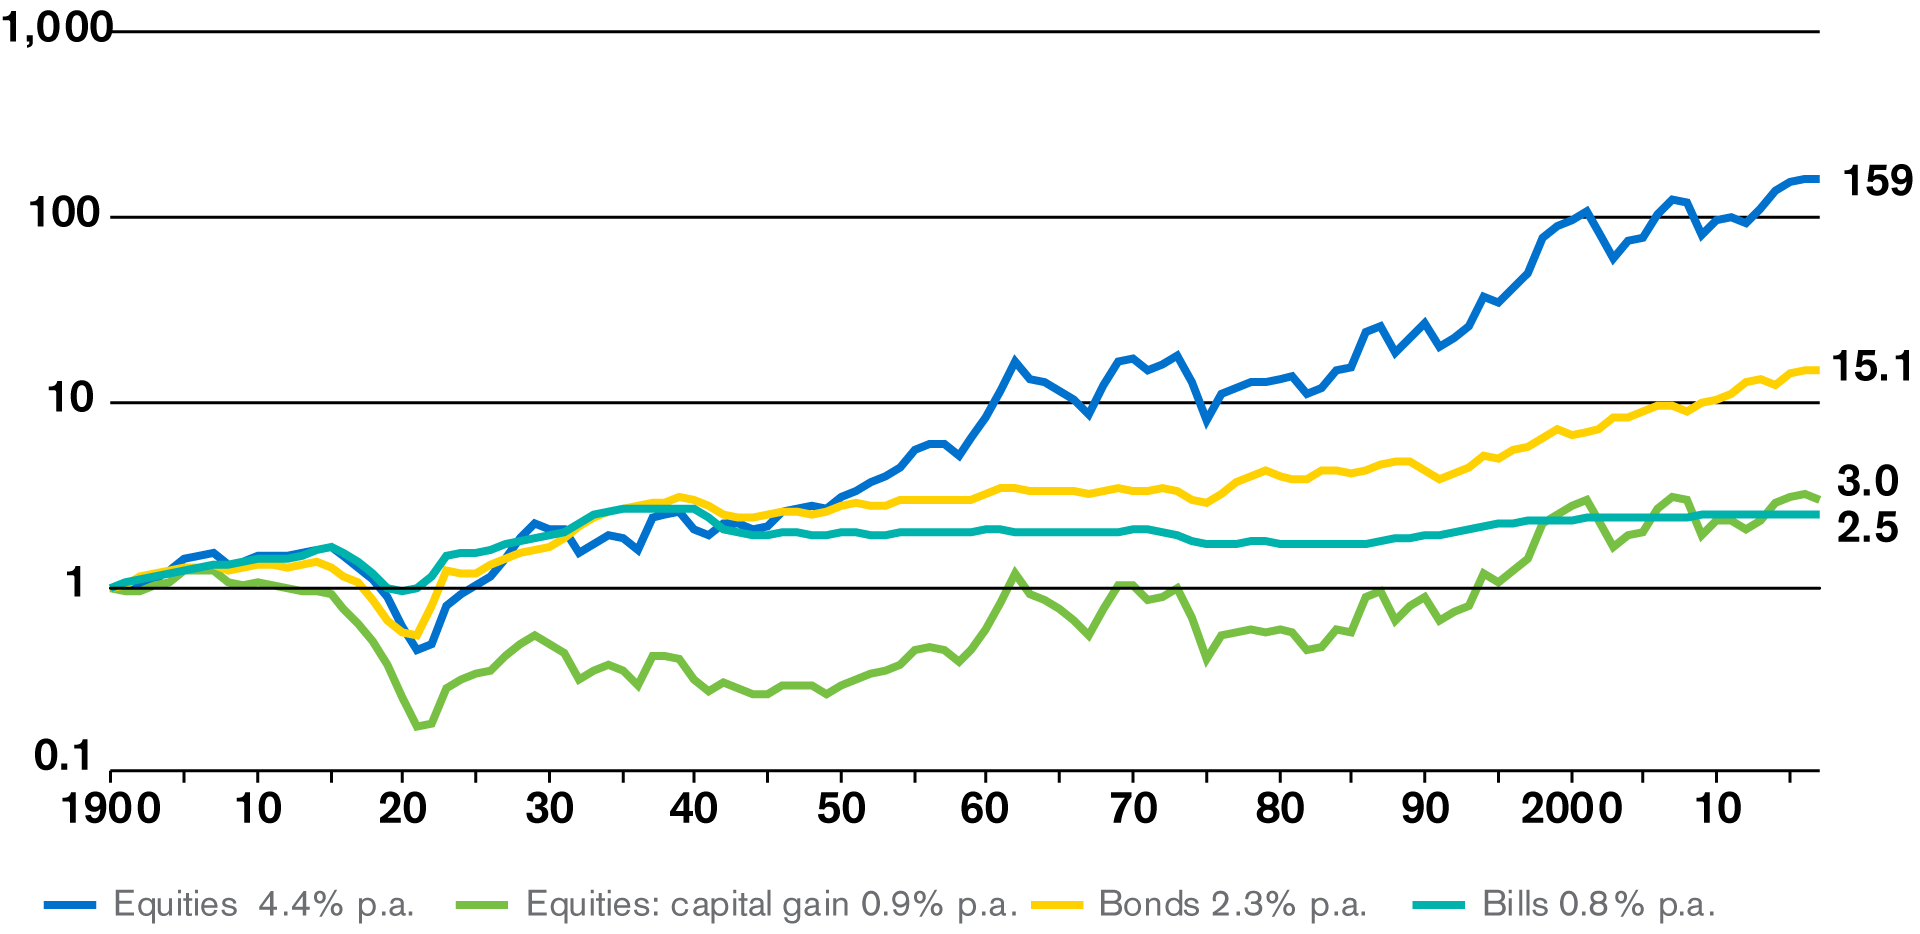 Cumulative Returns on Swiss Asset Classes in Real Terms